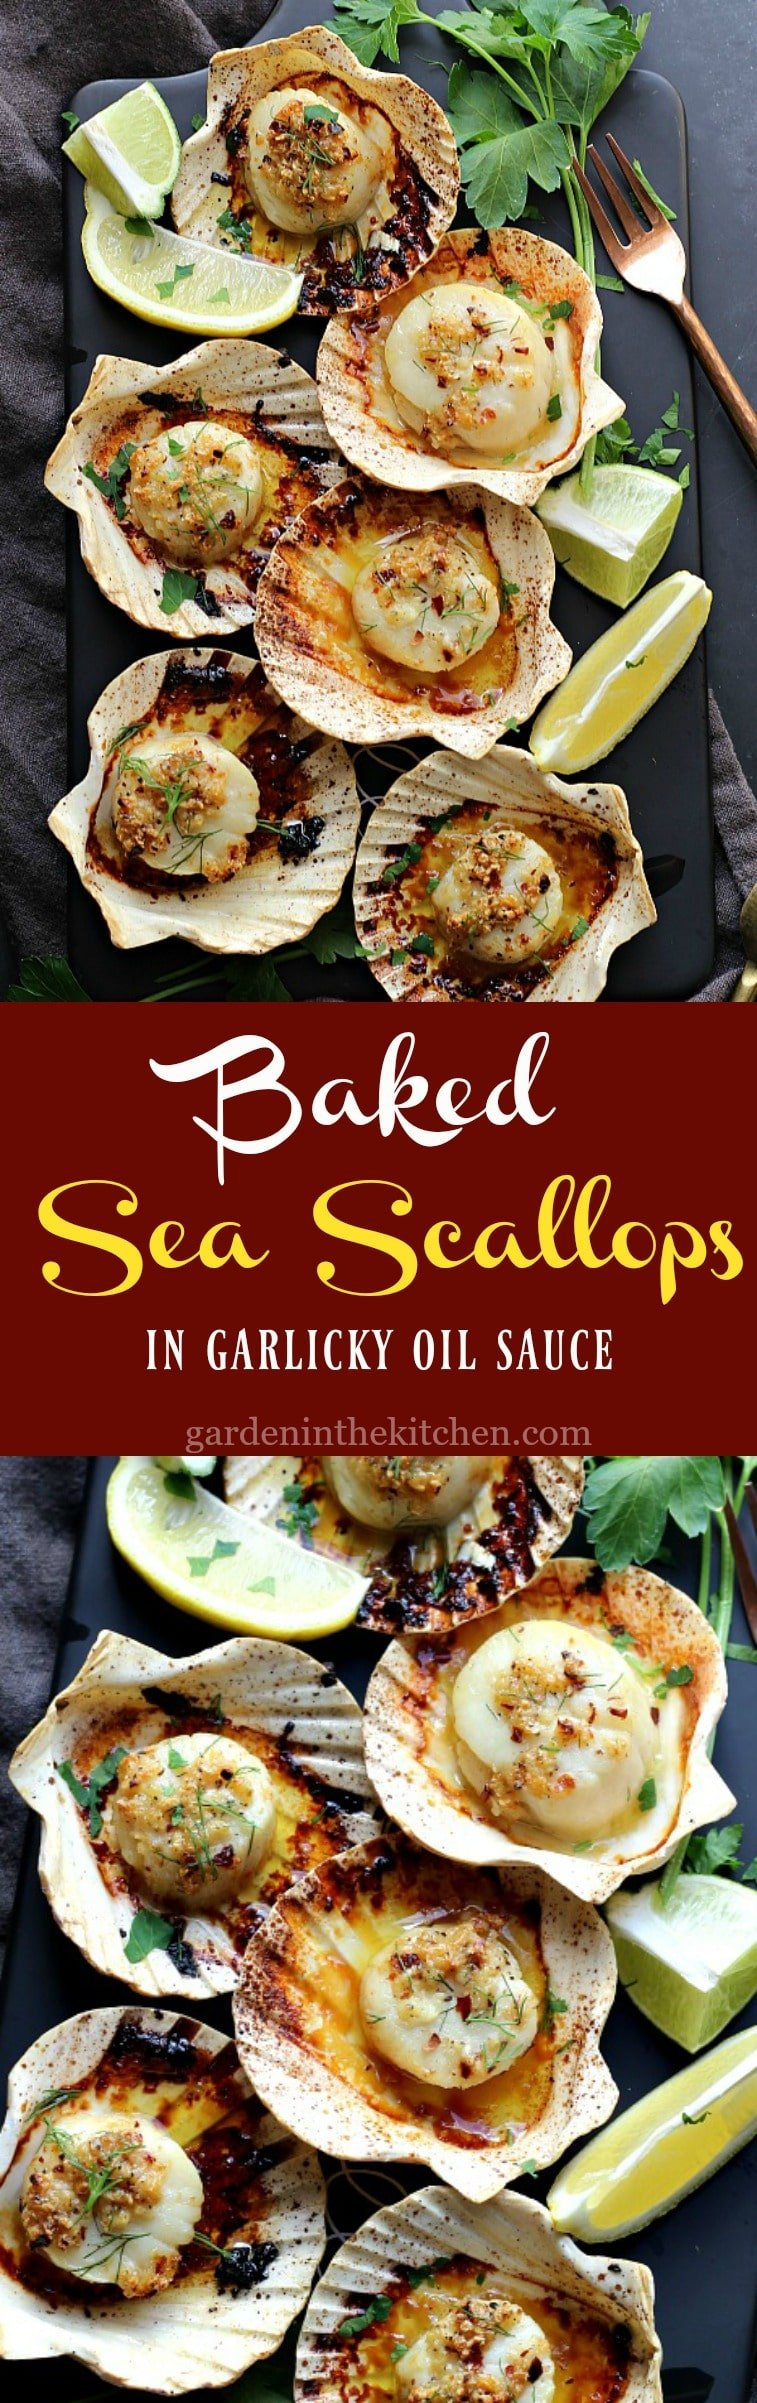 Baked Sea Scallops